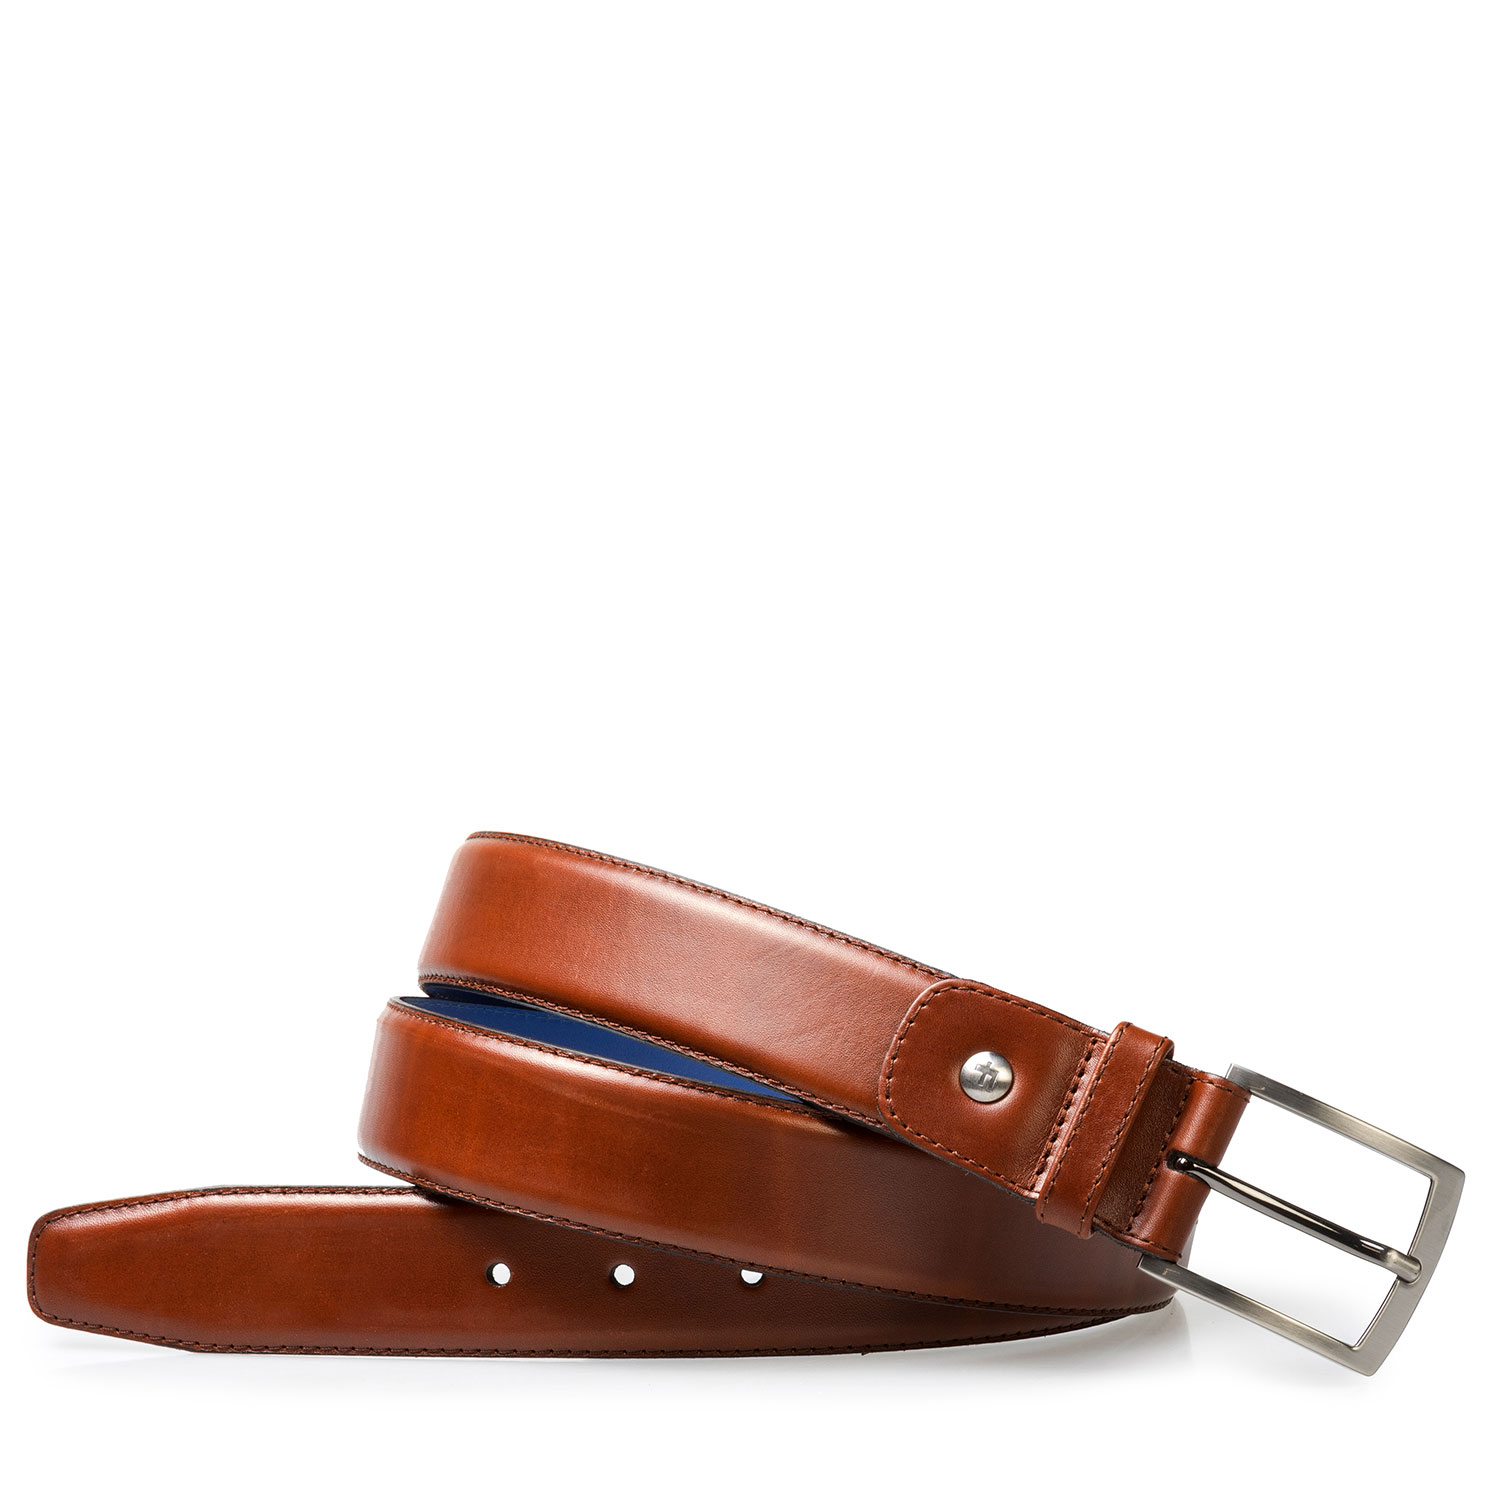 75144/07 - Belt calf leather cognac